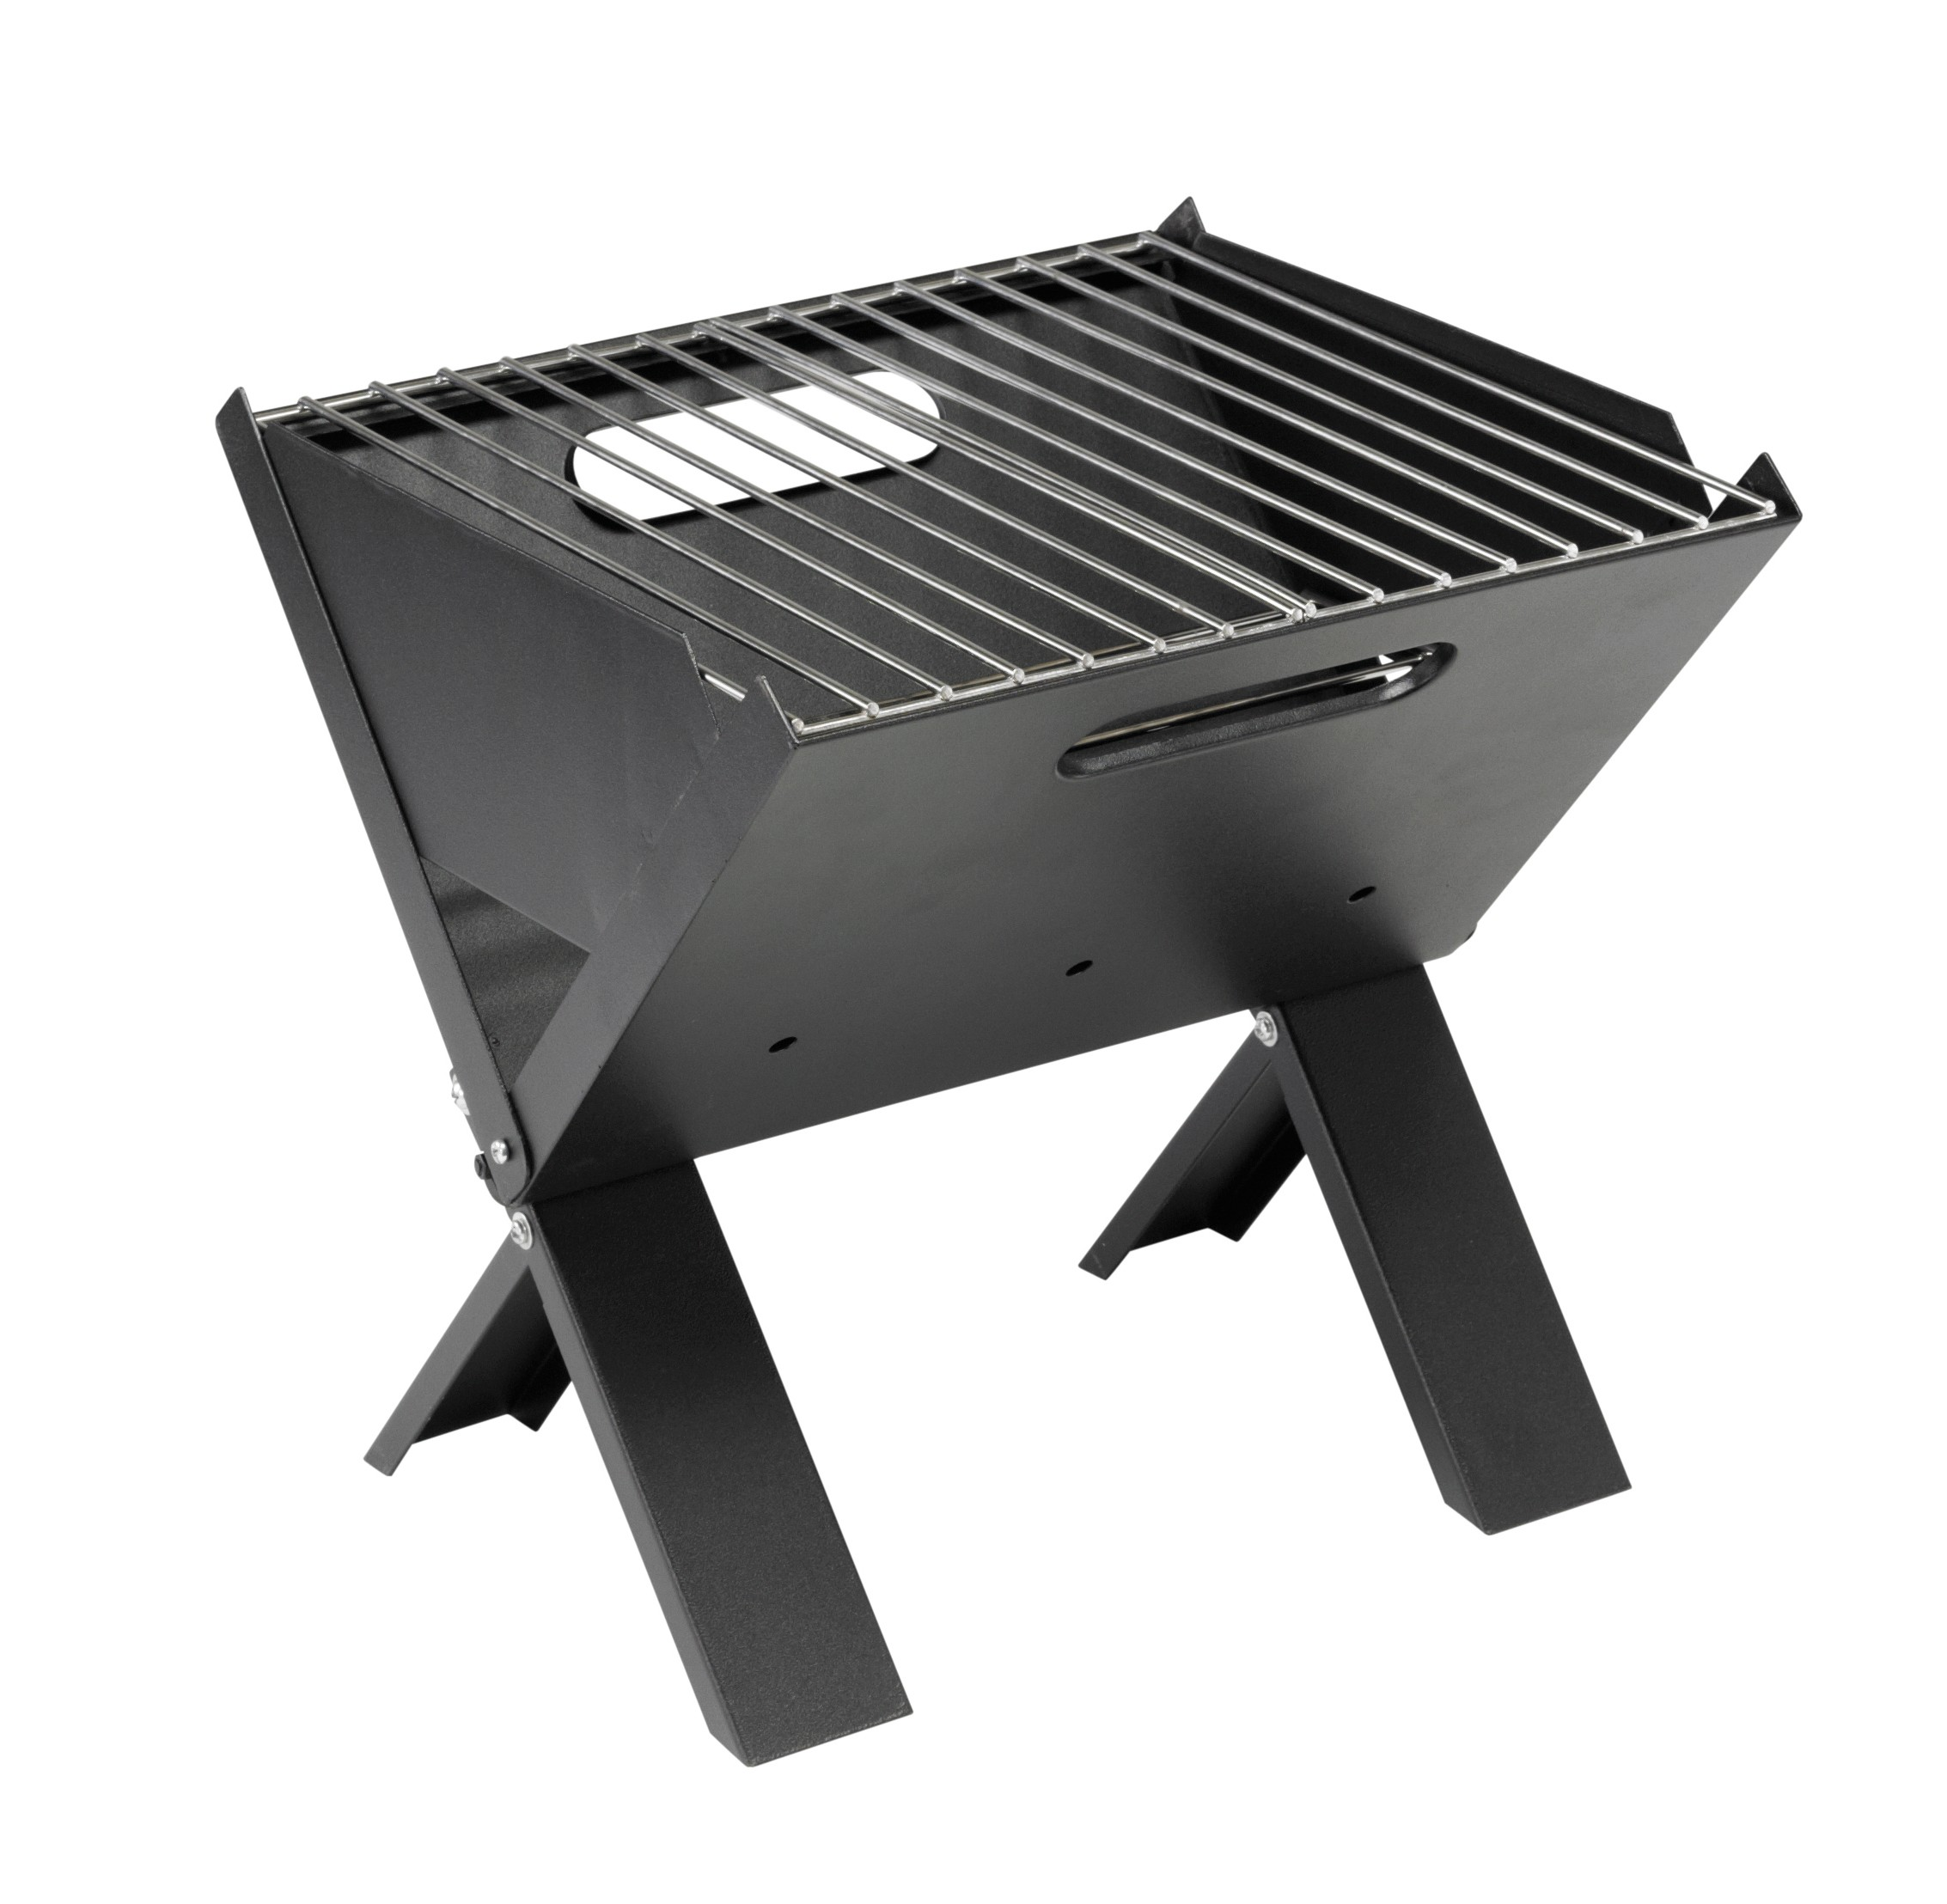 Outwell Outdoor Küche Grill Cazal Compact Backpacker Store